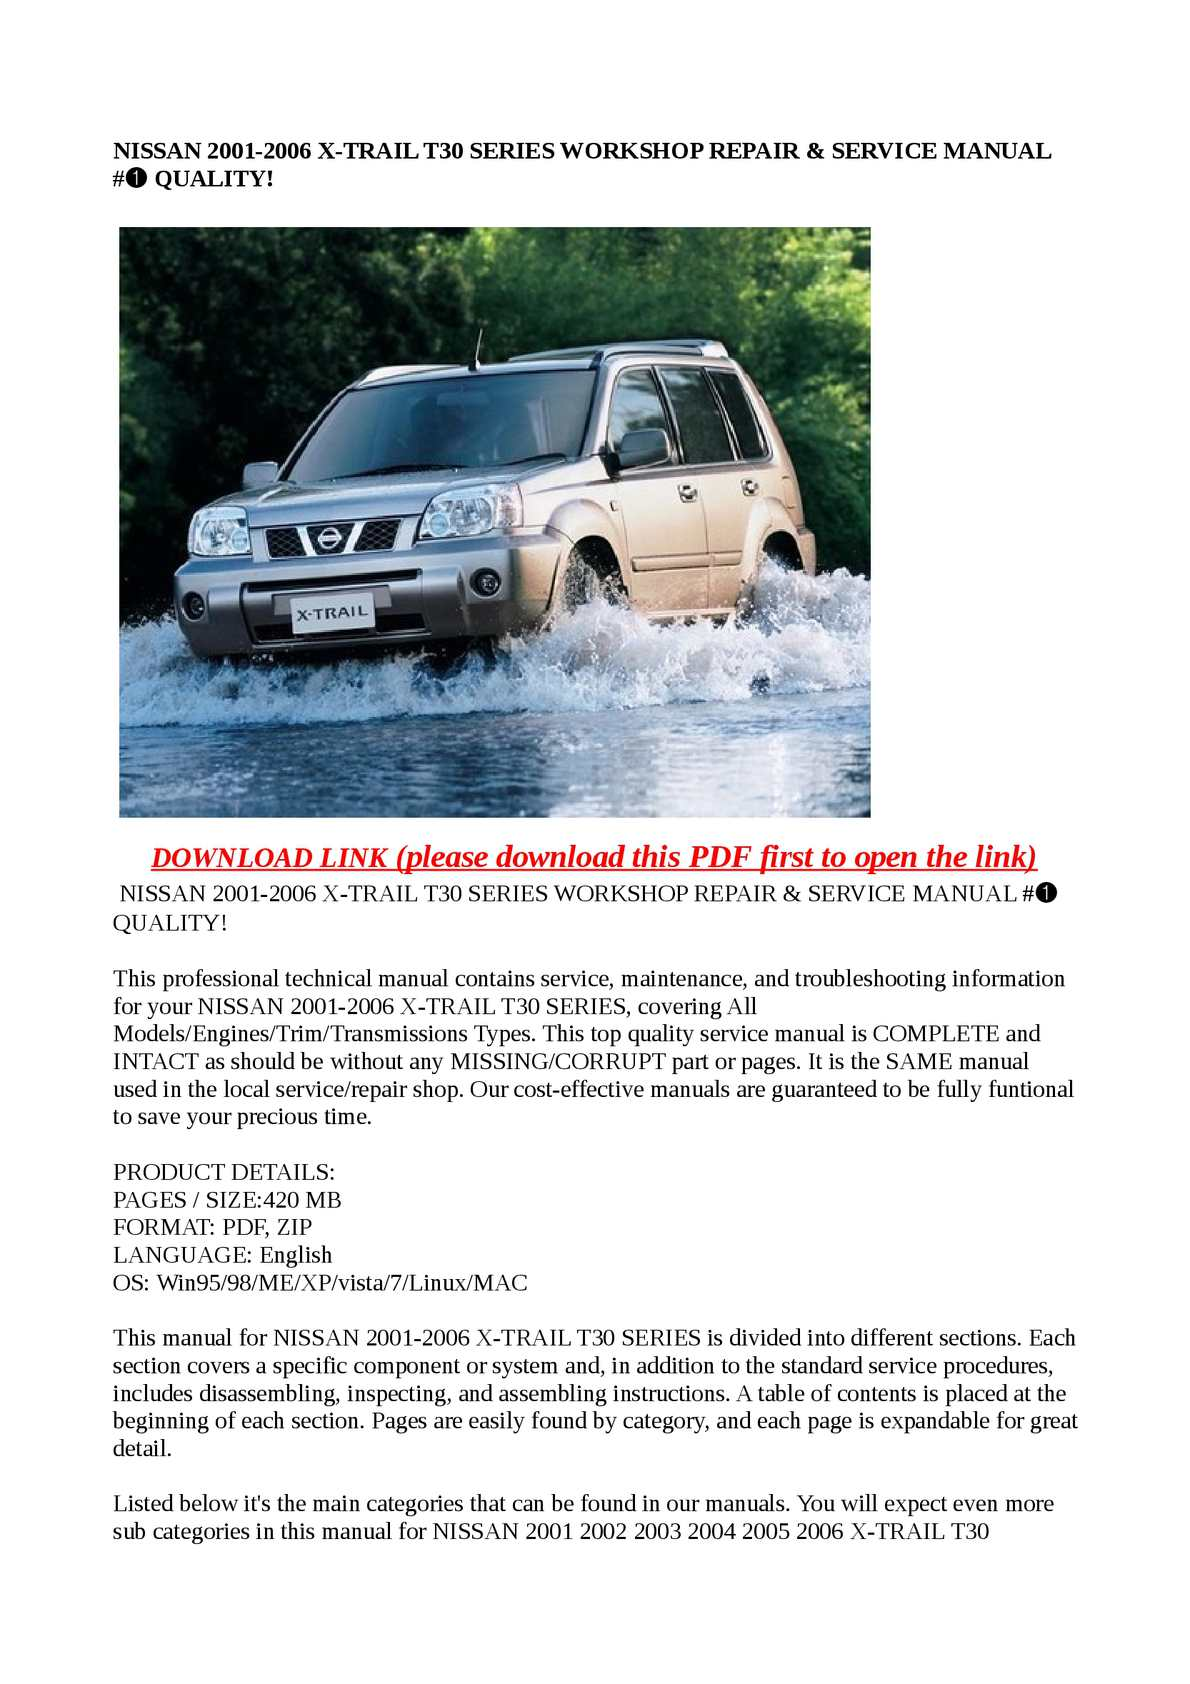 Calaméo - NISSAN 2001-2006 X-TRAIL T30 SERIES WORKSHOP REPAIR & SERVICE  MANUAL #➀ QUALITY!